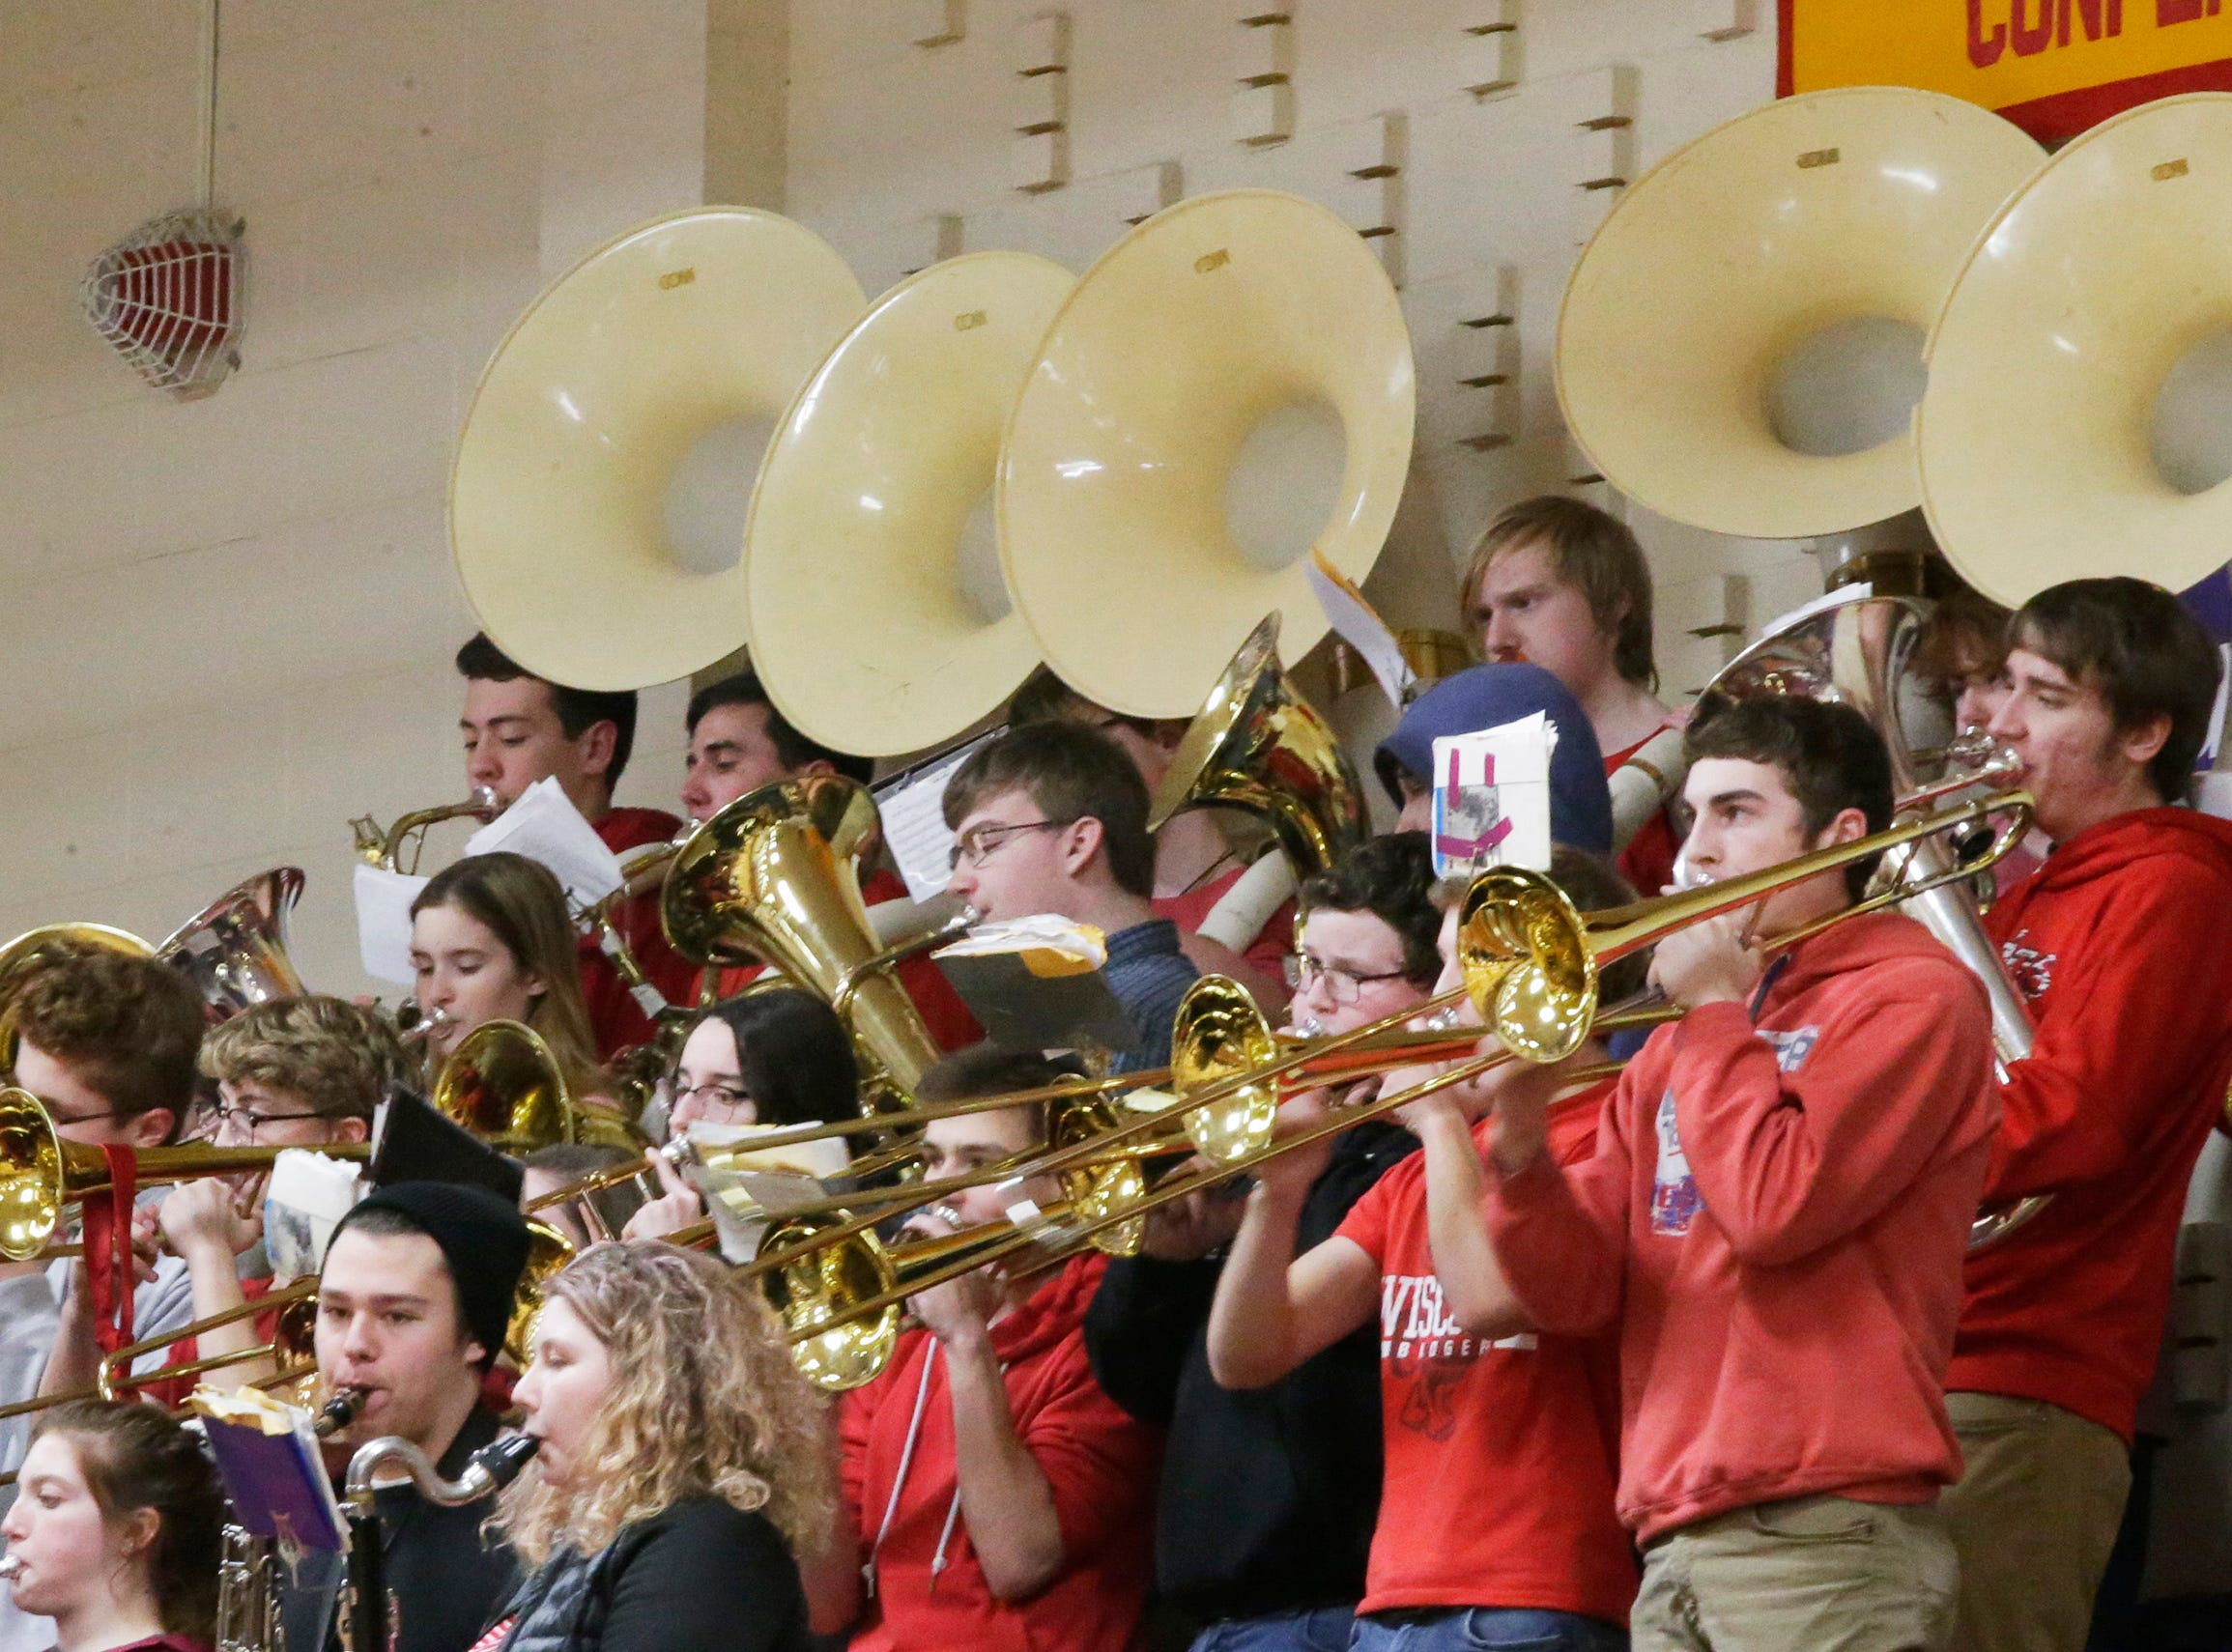 The Sheboygan Falls pep band performs before the game with Two Rivers girls, Thursday, February 14, 2019, in Sheboygan Falls, Wis.